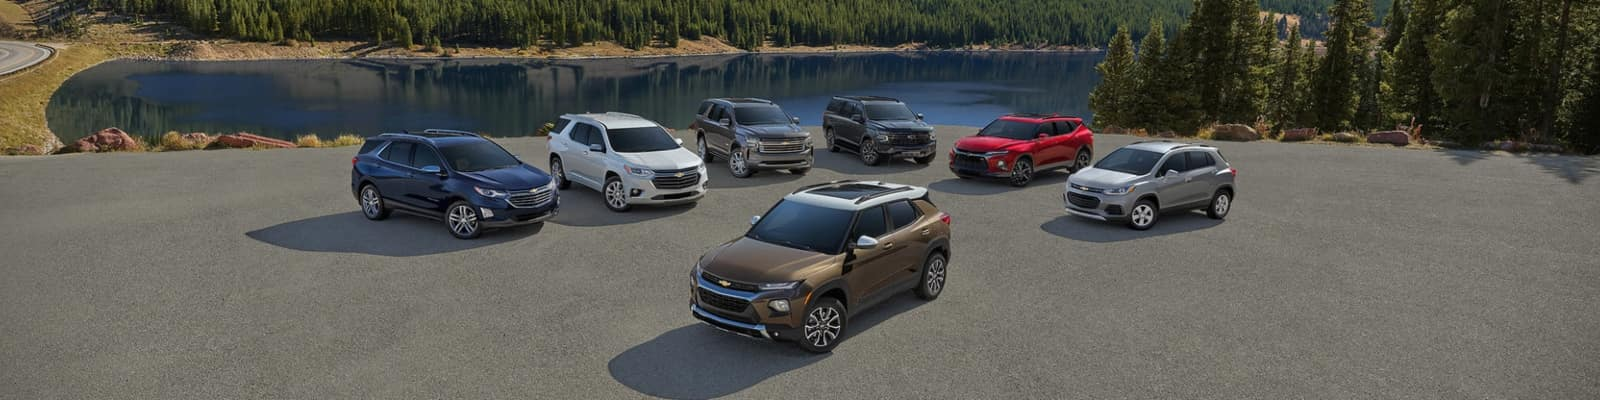 2021 Chevrolet SUV Lineup in Delaware, OH